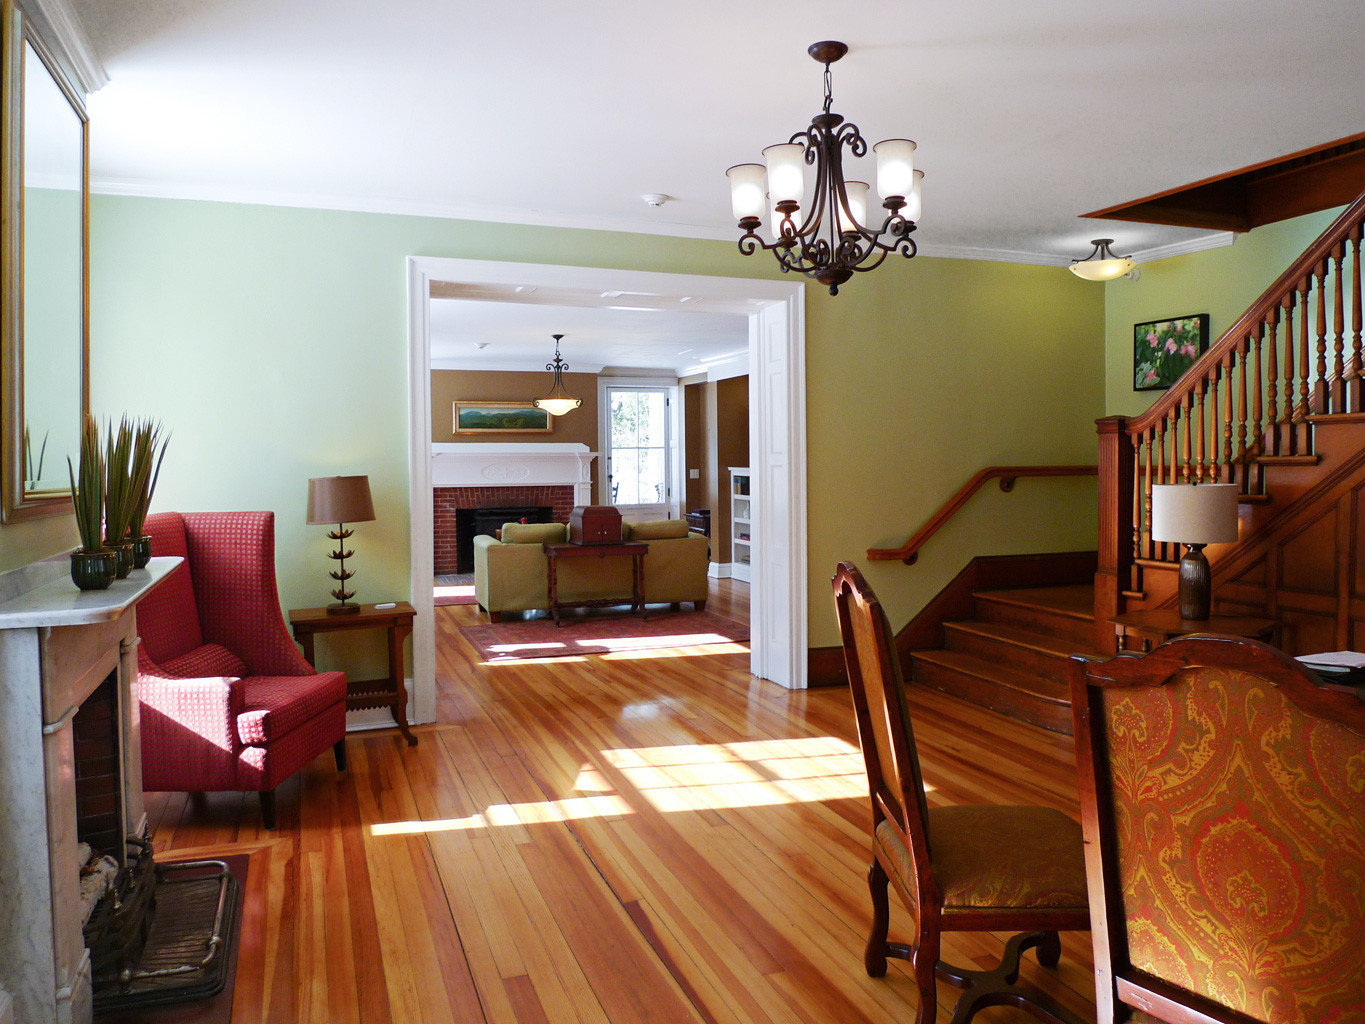 Classic Country Inn Living indoor floor wall room property ceiling wood home real estate wooden hardwood estate cottage furniture living room dining room interior design apartment wood flooring hard Suite area